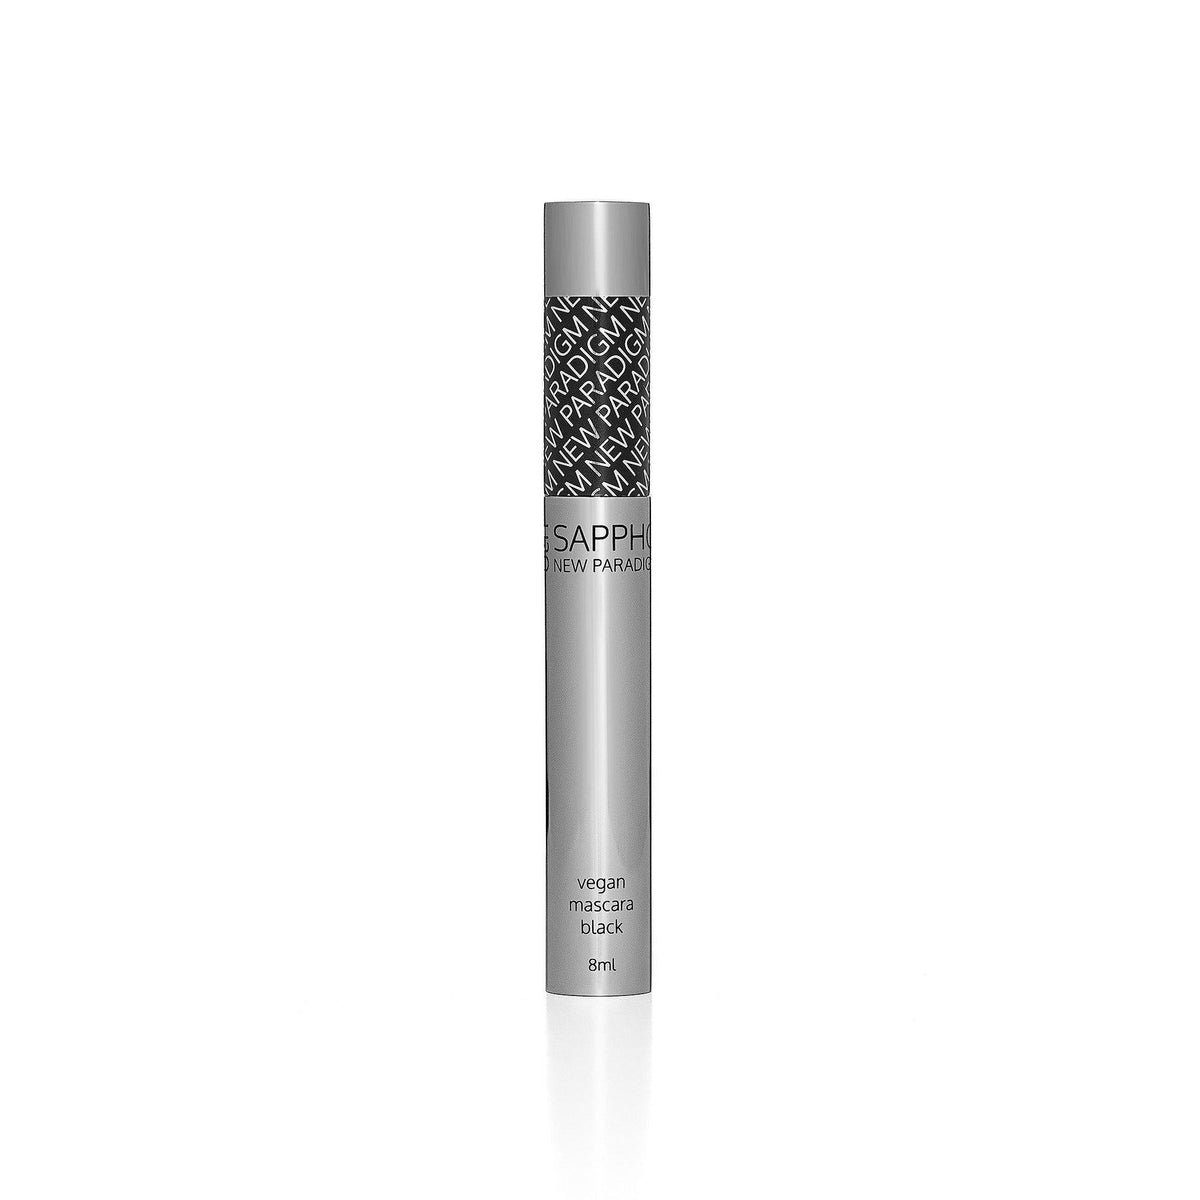 Vegan Mascara Mascara Sappho New Paradigm 8ml - Genuine Selection